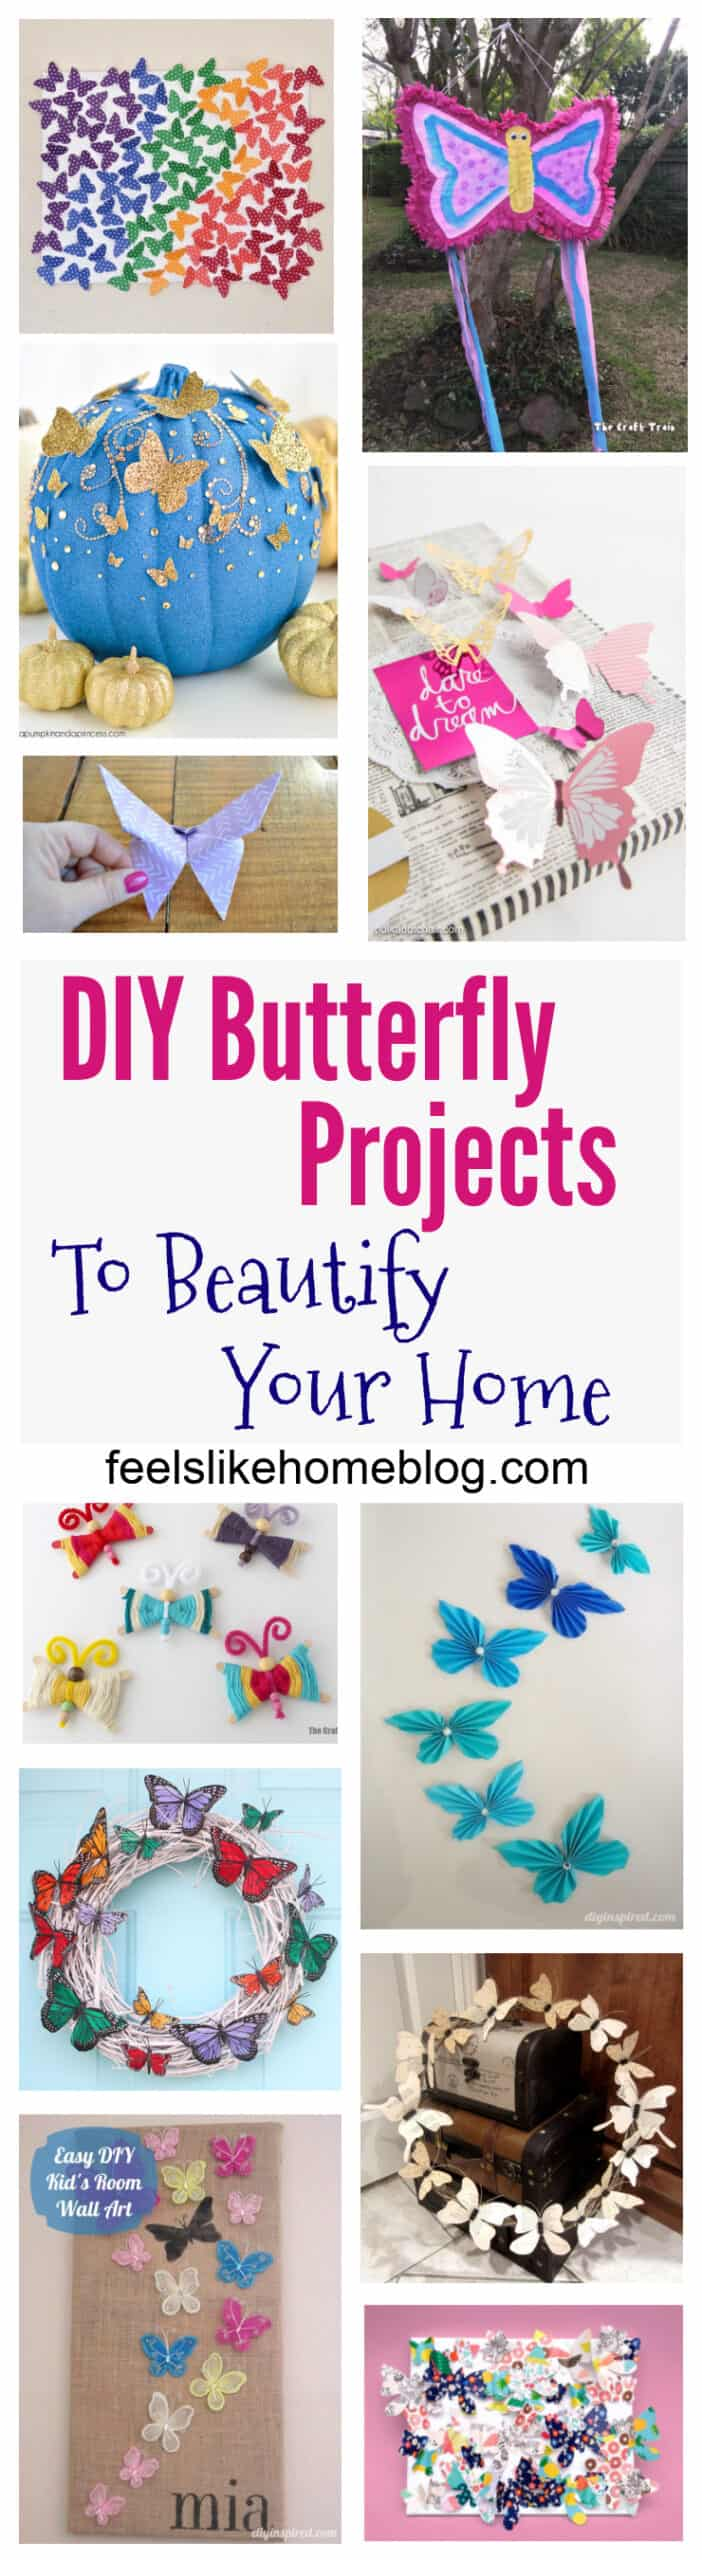 15 DIY Butterfly Decorations to Beautify Your Walls